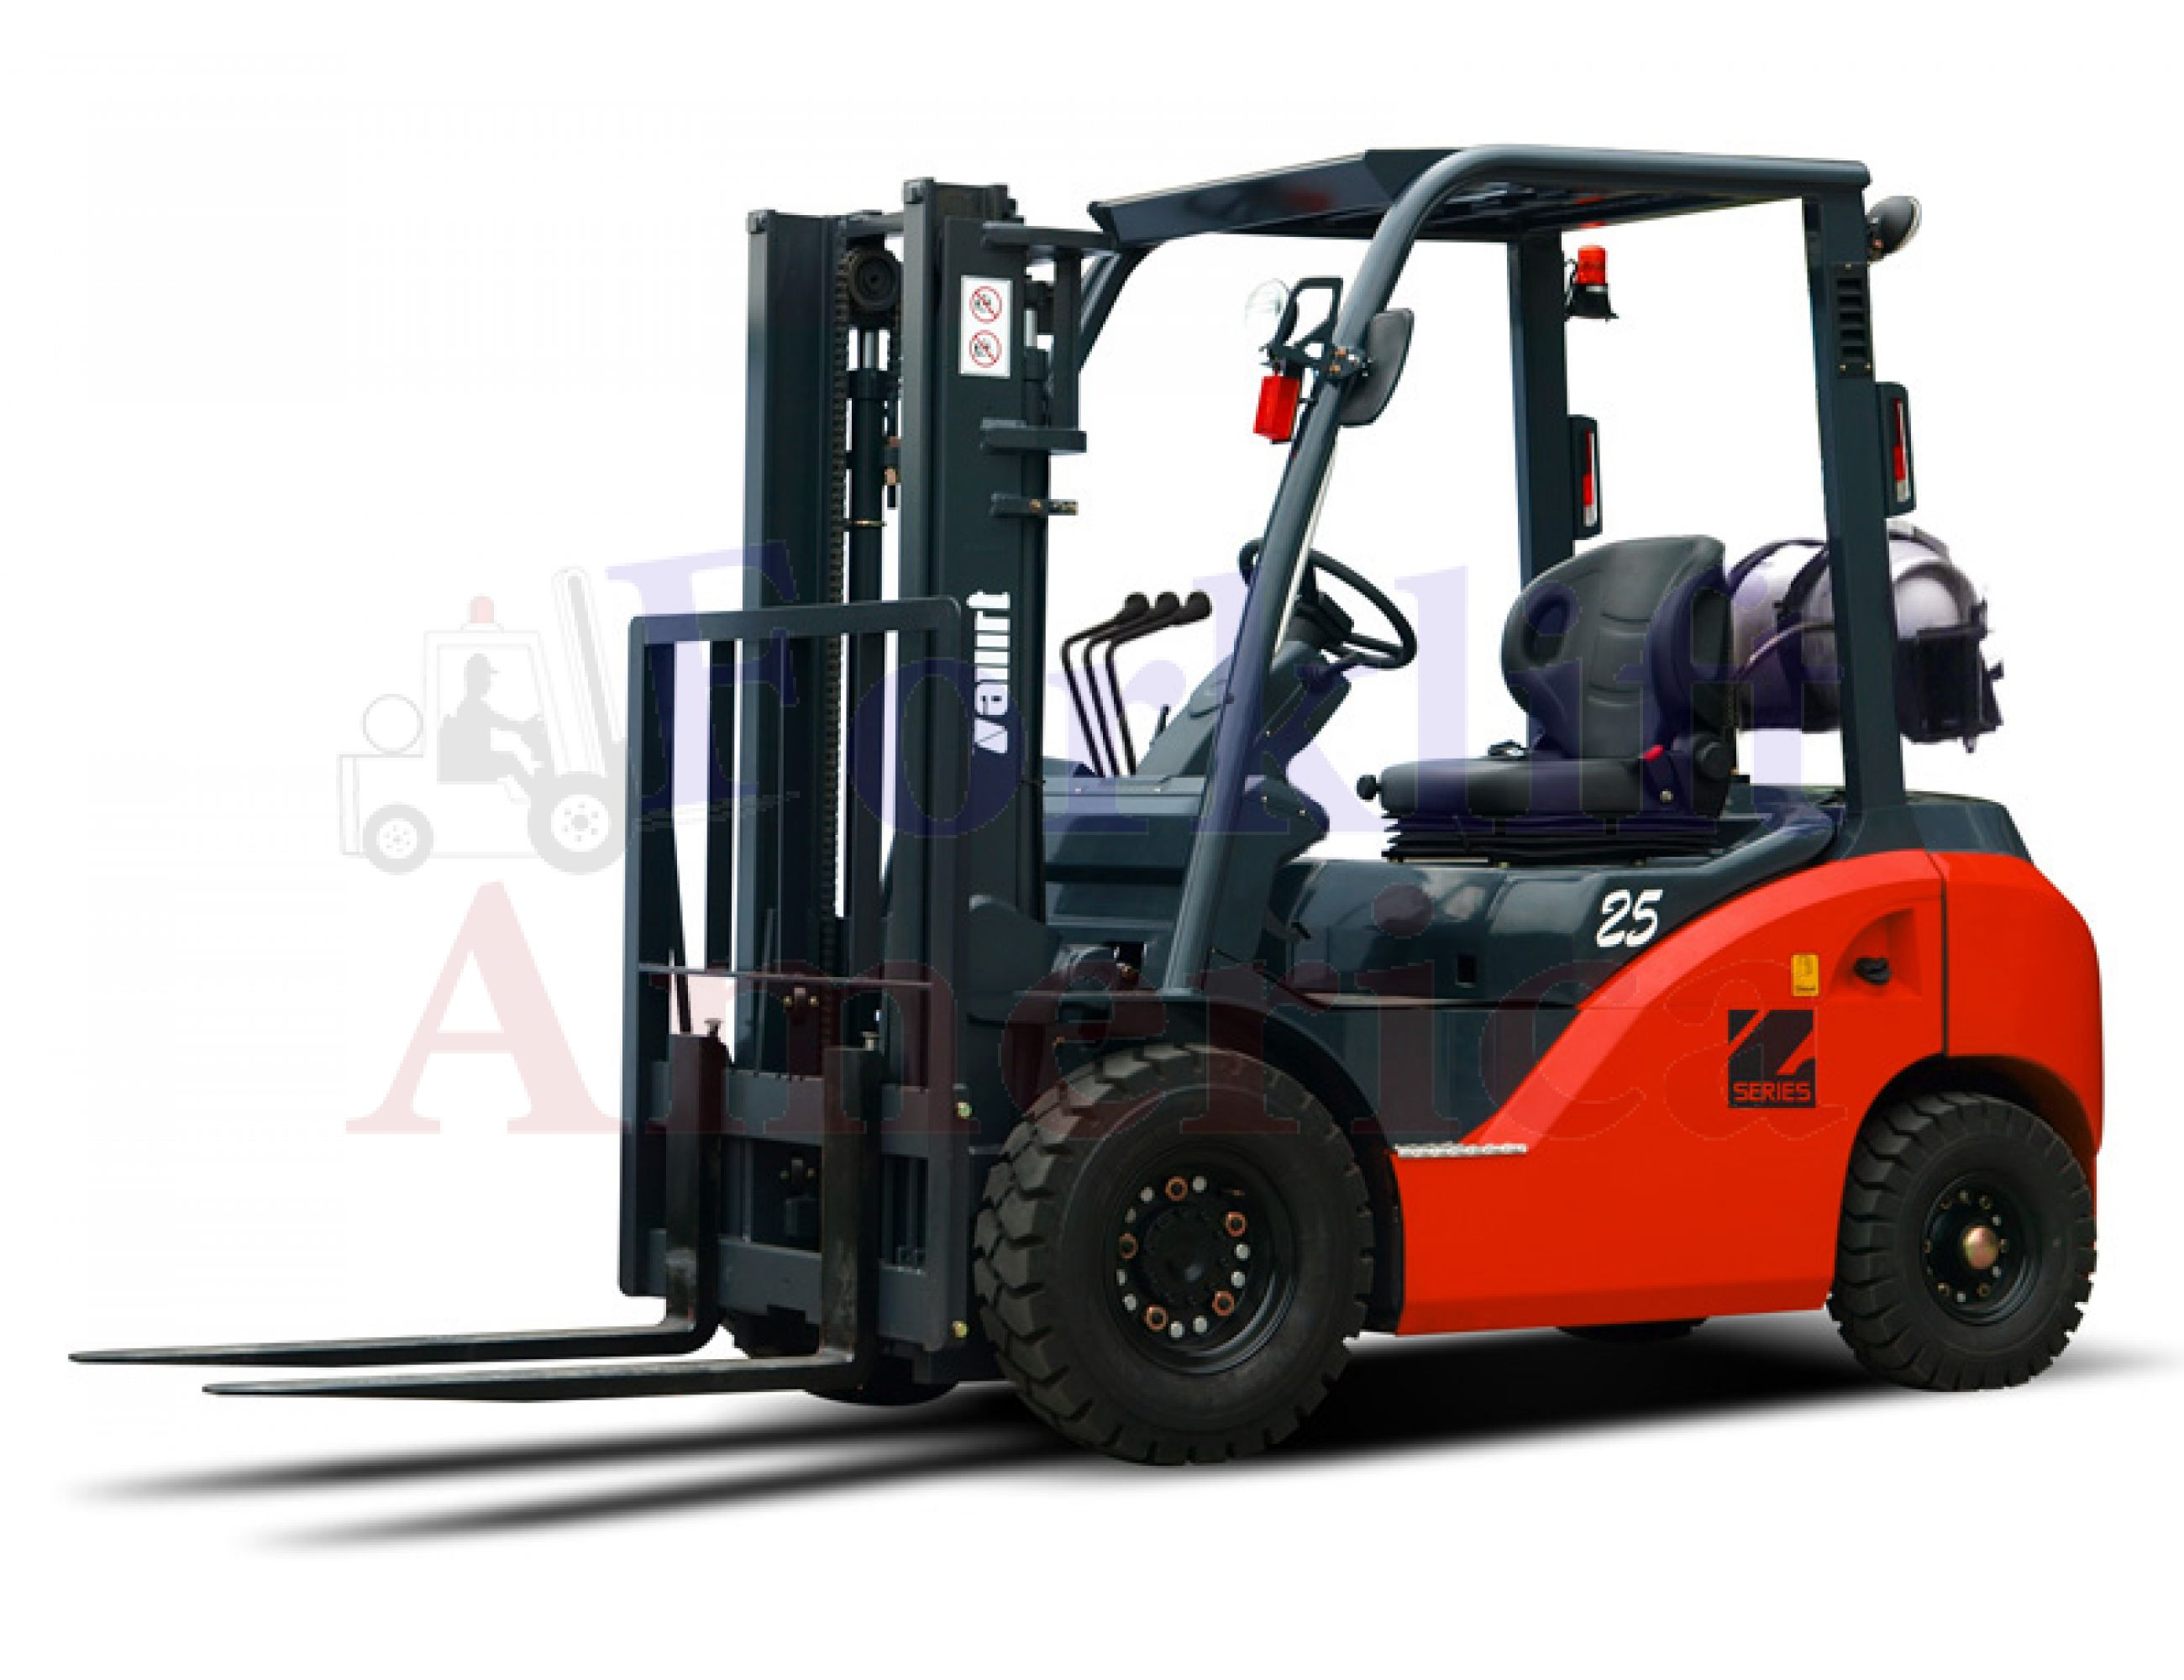 Tailift (owned by Toyota) Z-Series PG25C 5000 LB Pneumatic LPG Forklift